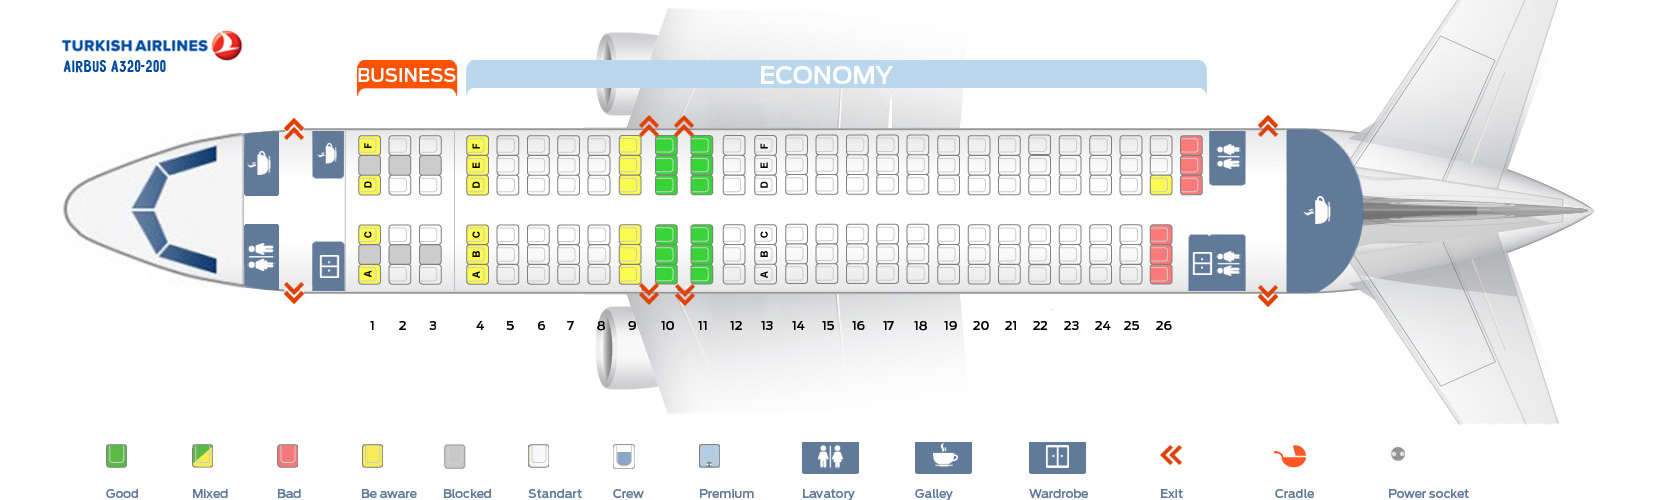 Seat Map Airbus A320-200 Turkish Airlines